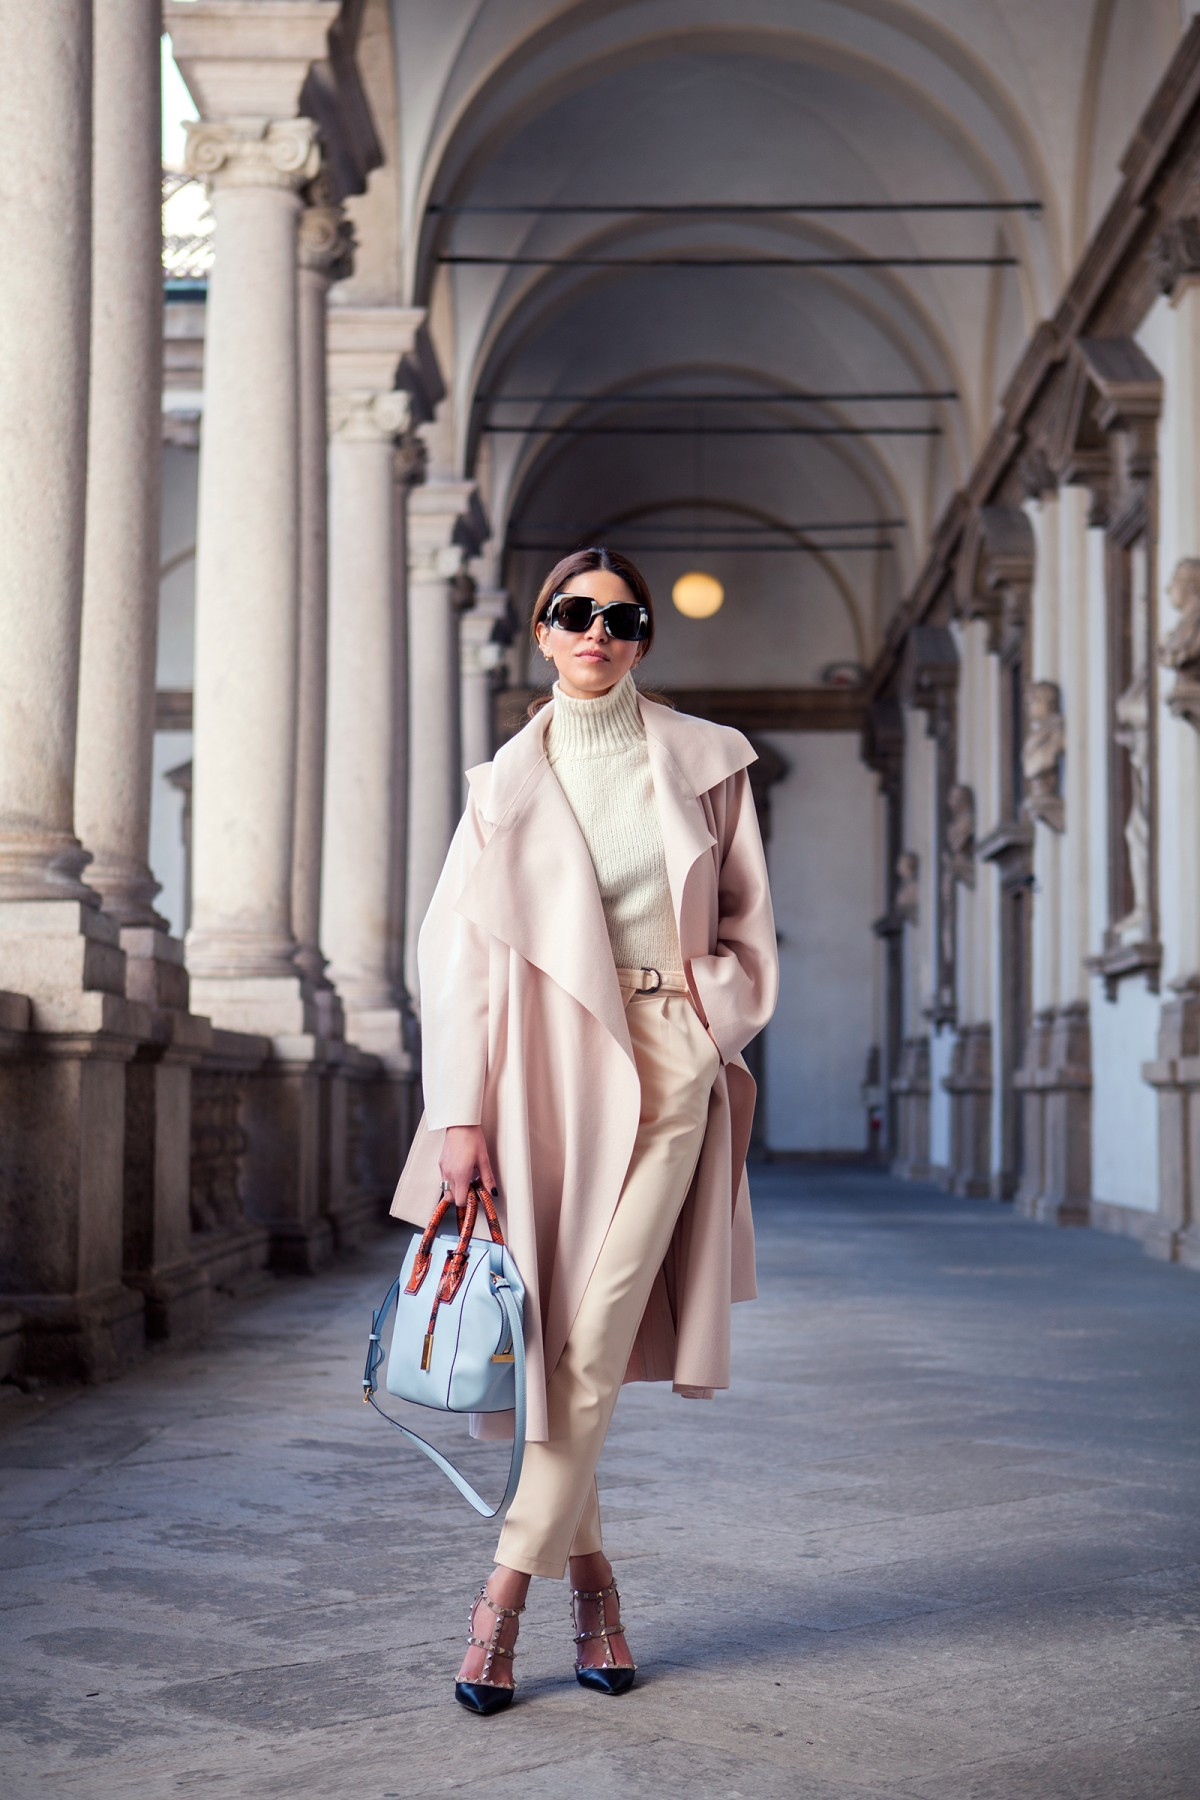 ea4caef71d3275e66eec9a8224b4642d4de72111-milan-fashion-week-day-1-pastel-chic-7-1200